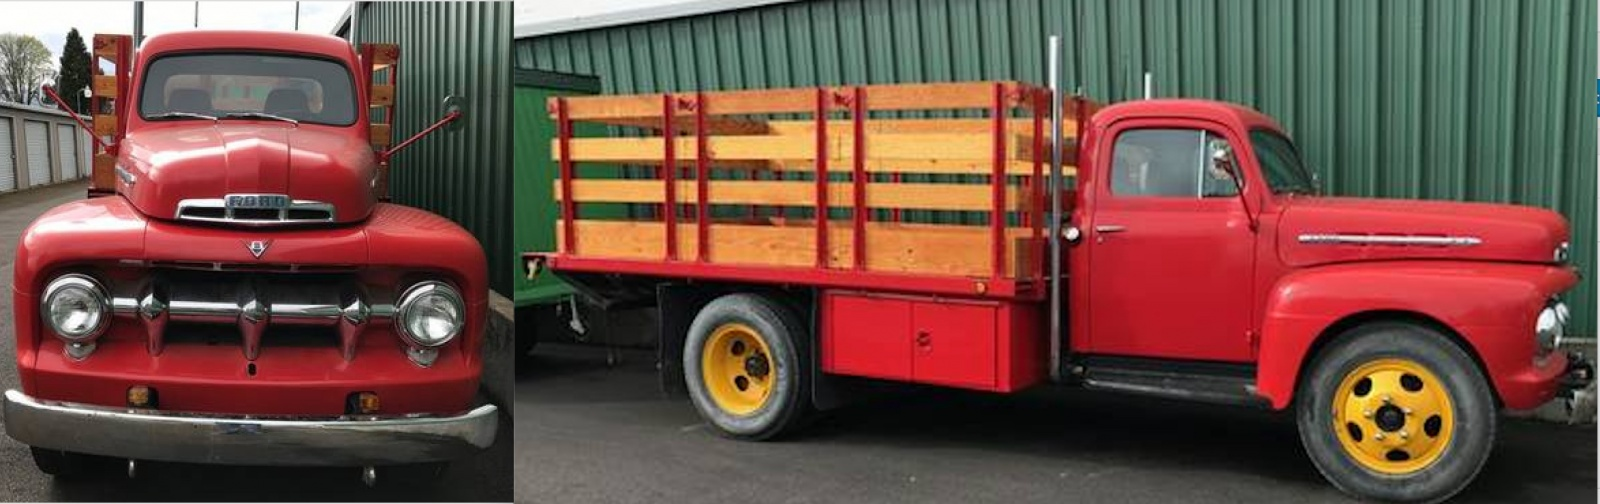 Estate Auction Model T Ford F5 And 1952 Federal 1951 Dump Trucks Heres A Nicely Restored Stake Bed Wouldnt This Be Stylish Ride For Hauling Your Stuff To Swap Meets